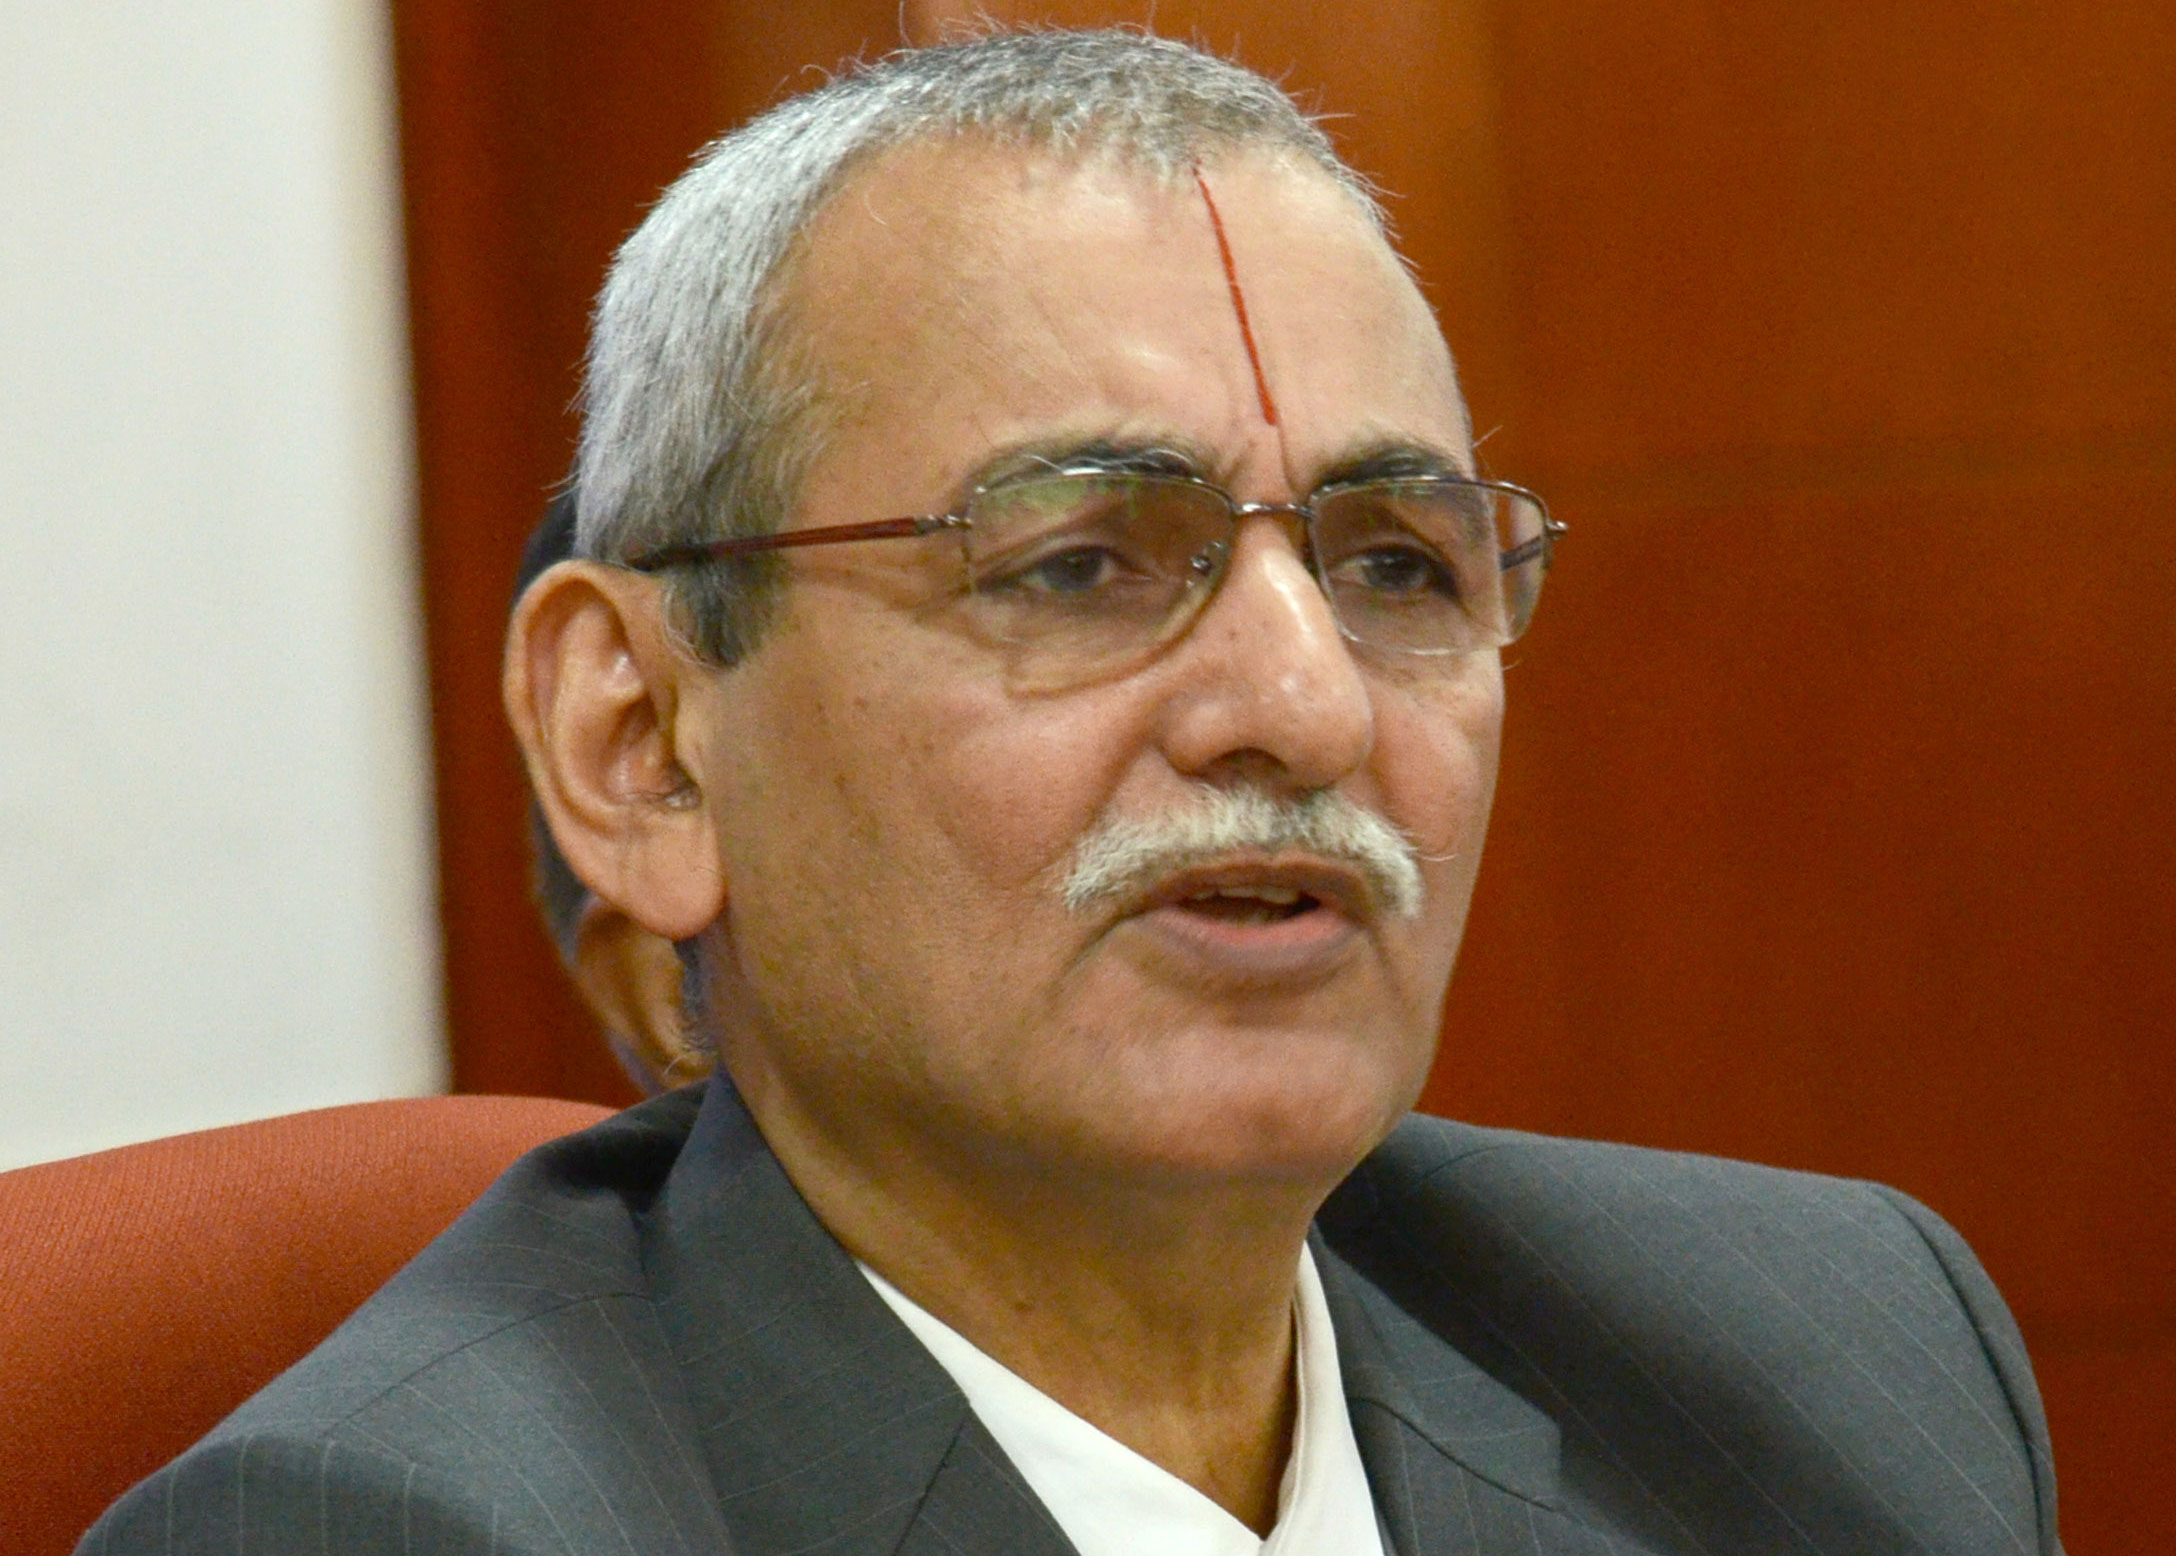 K.V. Chowdary, the central vigilance commissioner, is dissatisfied with the written reply Verma had sent rubbishing Rakesh Asthana's allegations, according to sources.